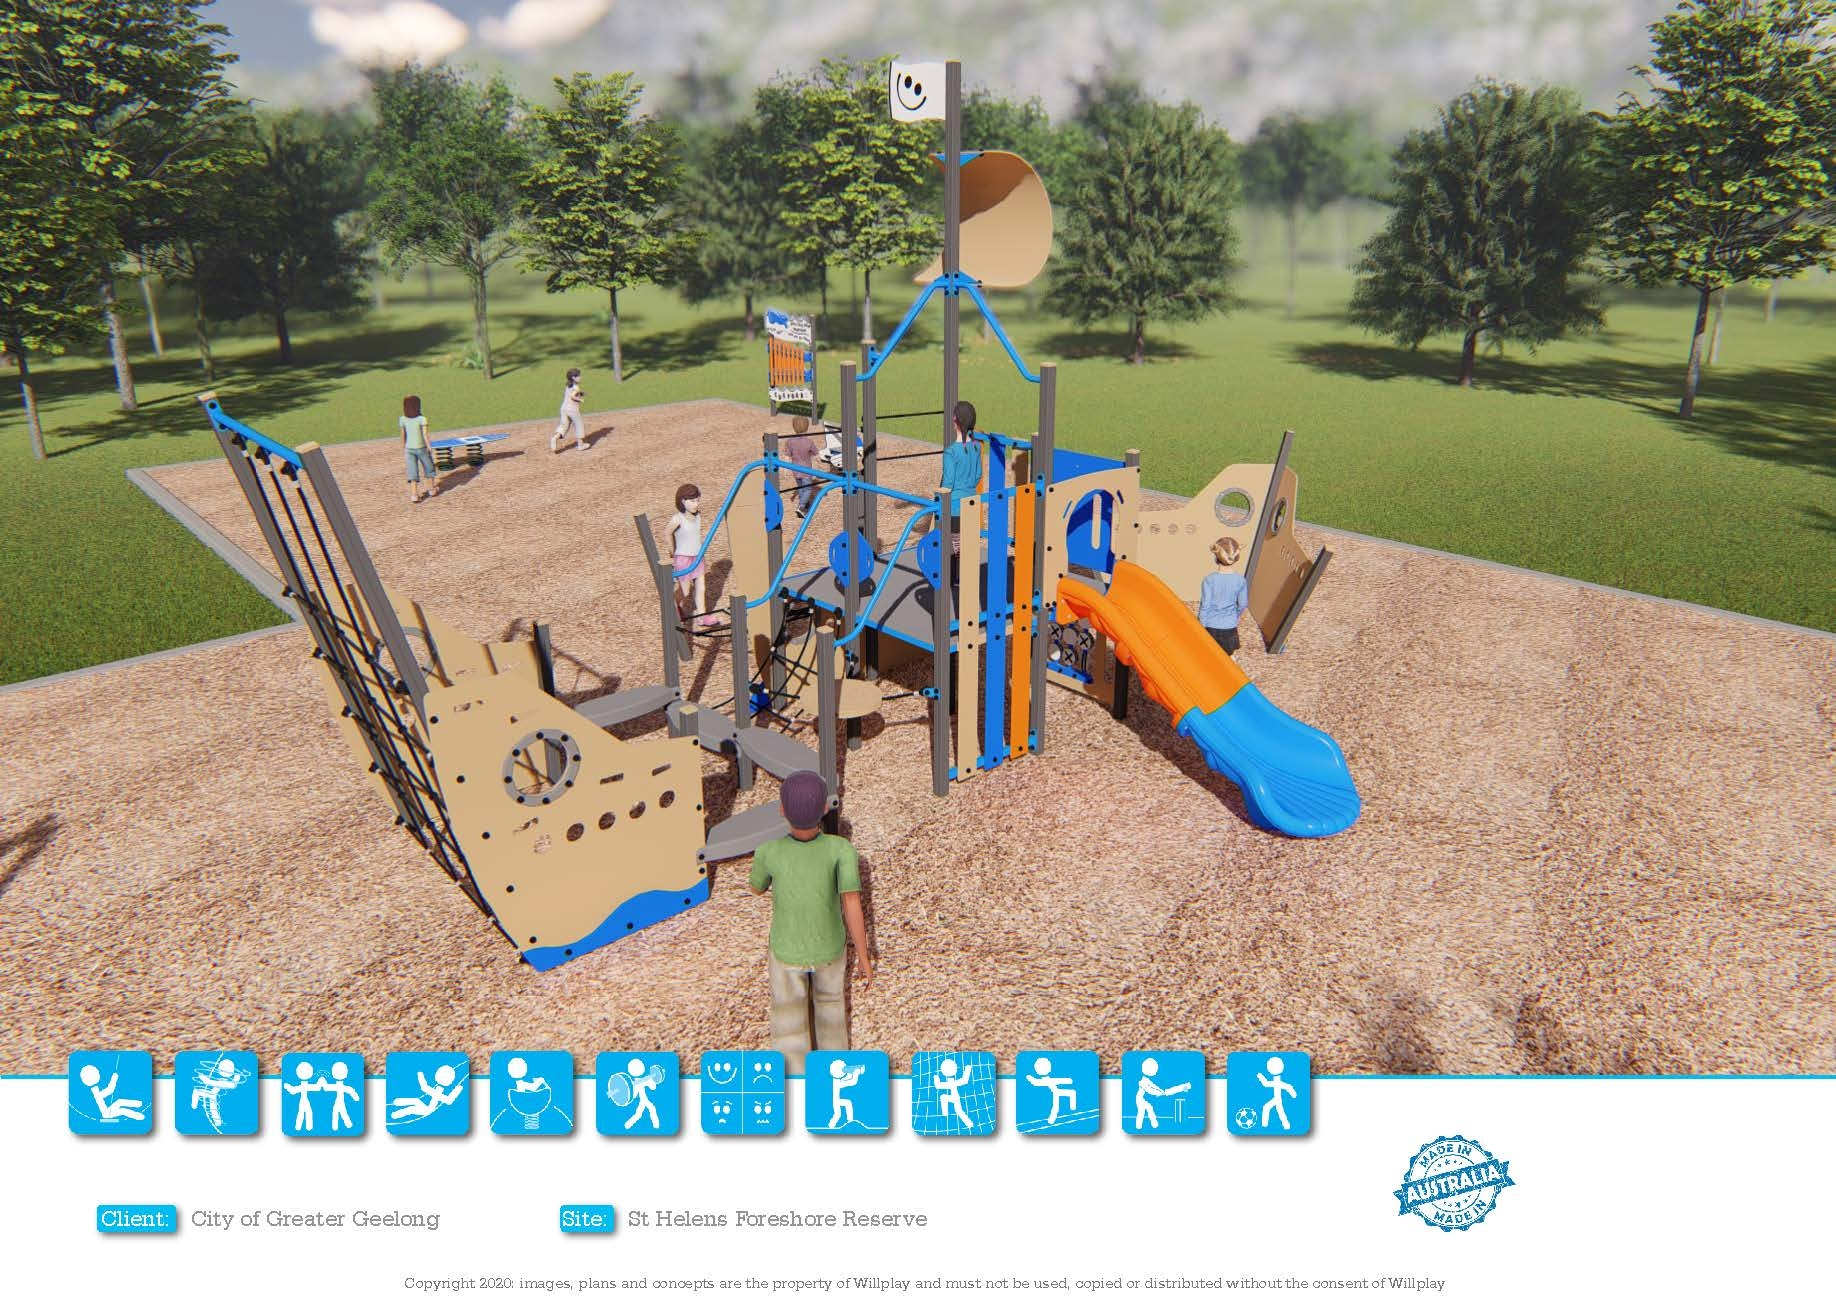 St Helens Forehore Reserve - proposed playground design